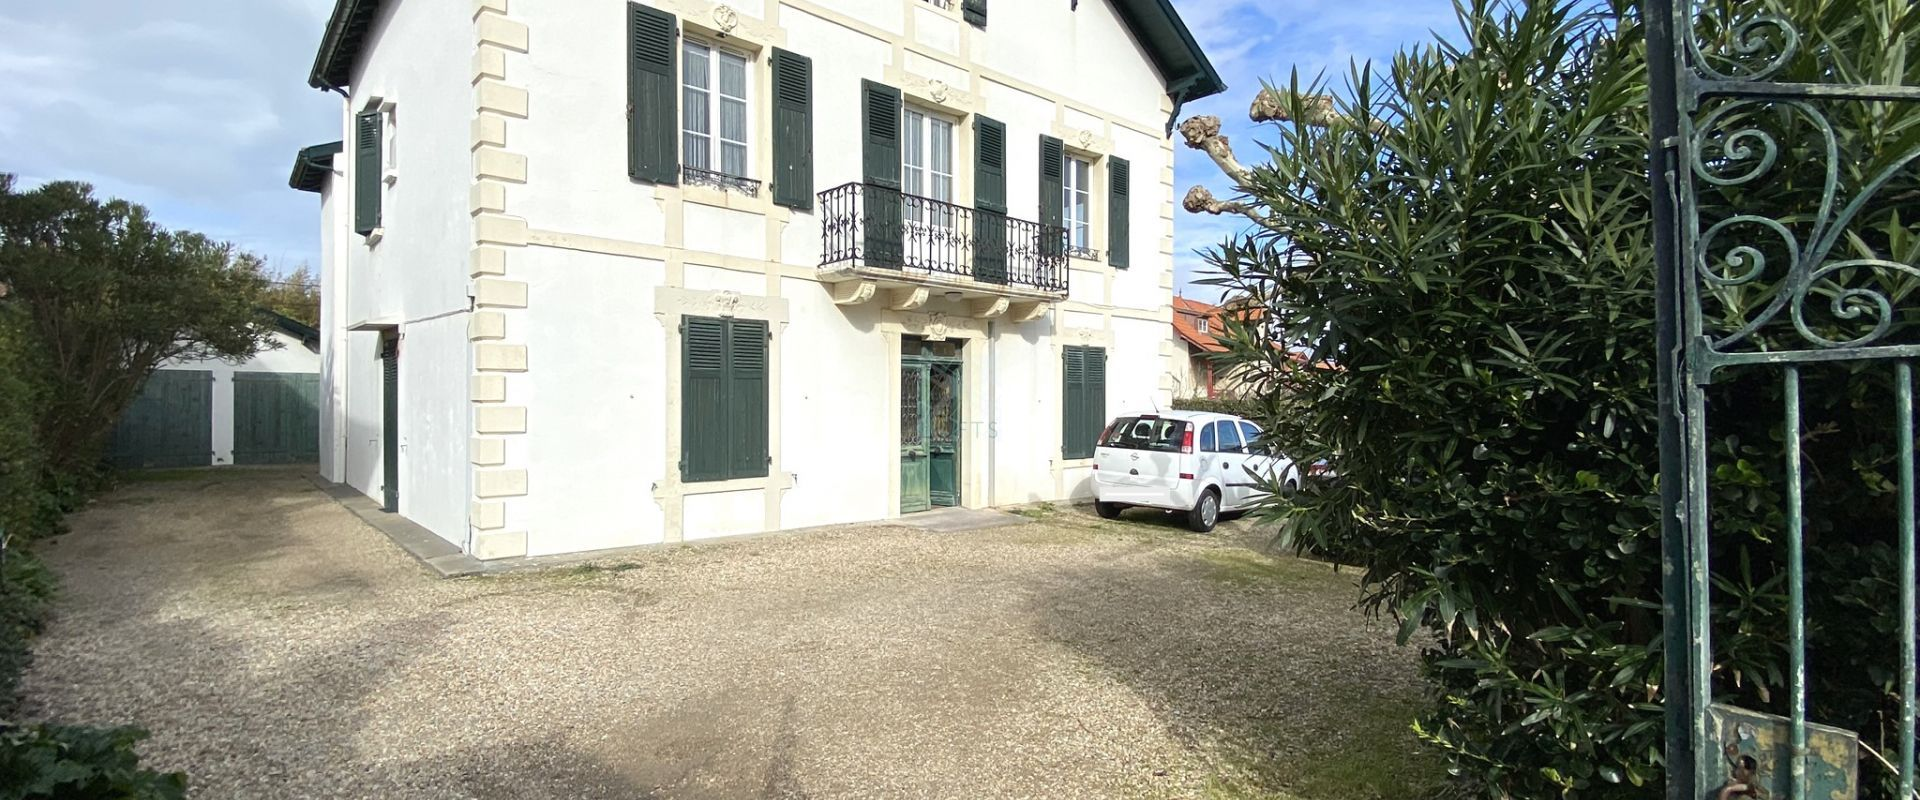 Exclusivity - Guéthary center - Family house with garden and garage